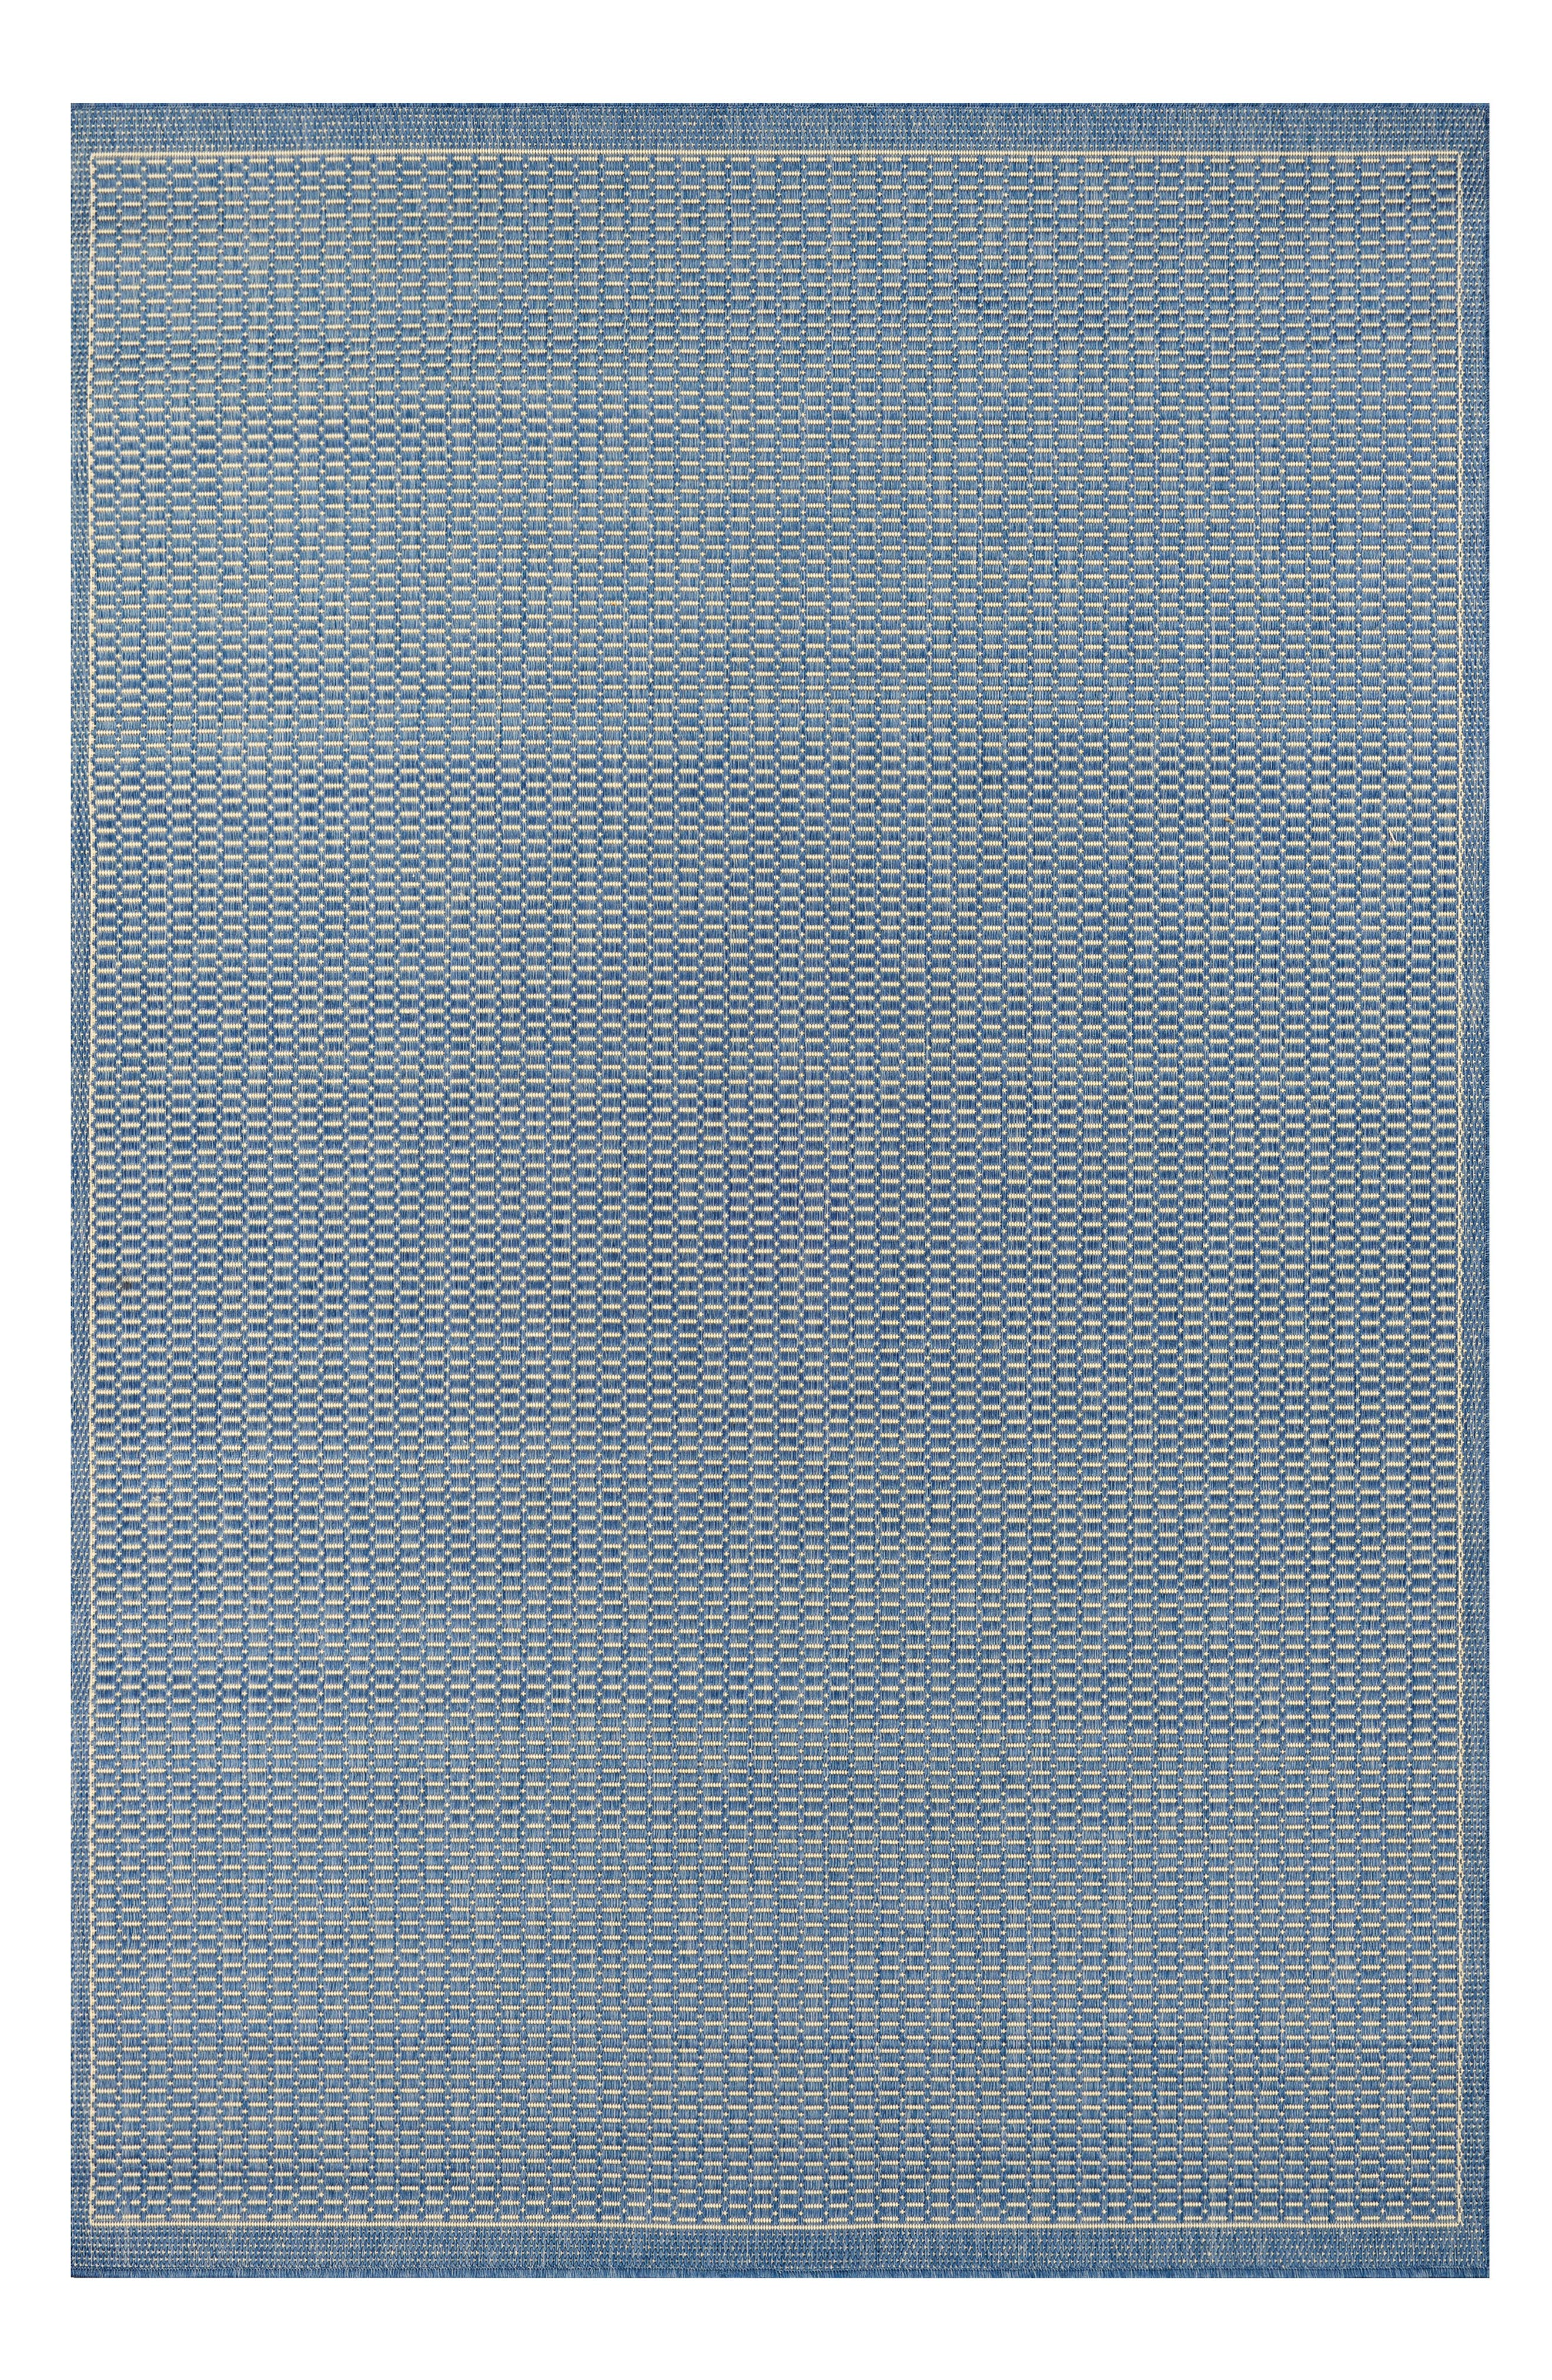 Saddlestitch Indoor/Outdoor Rug,                             Main thumbnail 1, color,                             Champagne/ Blue